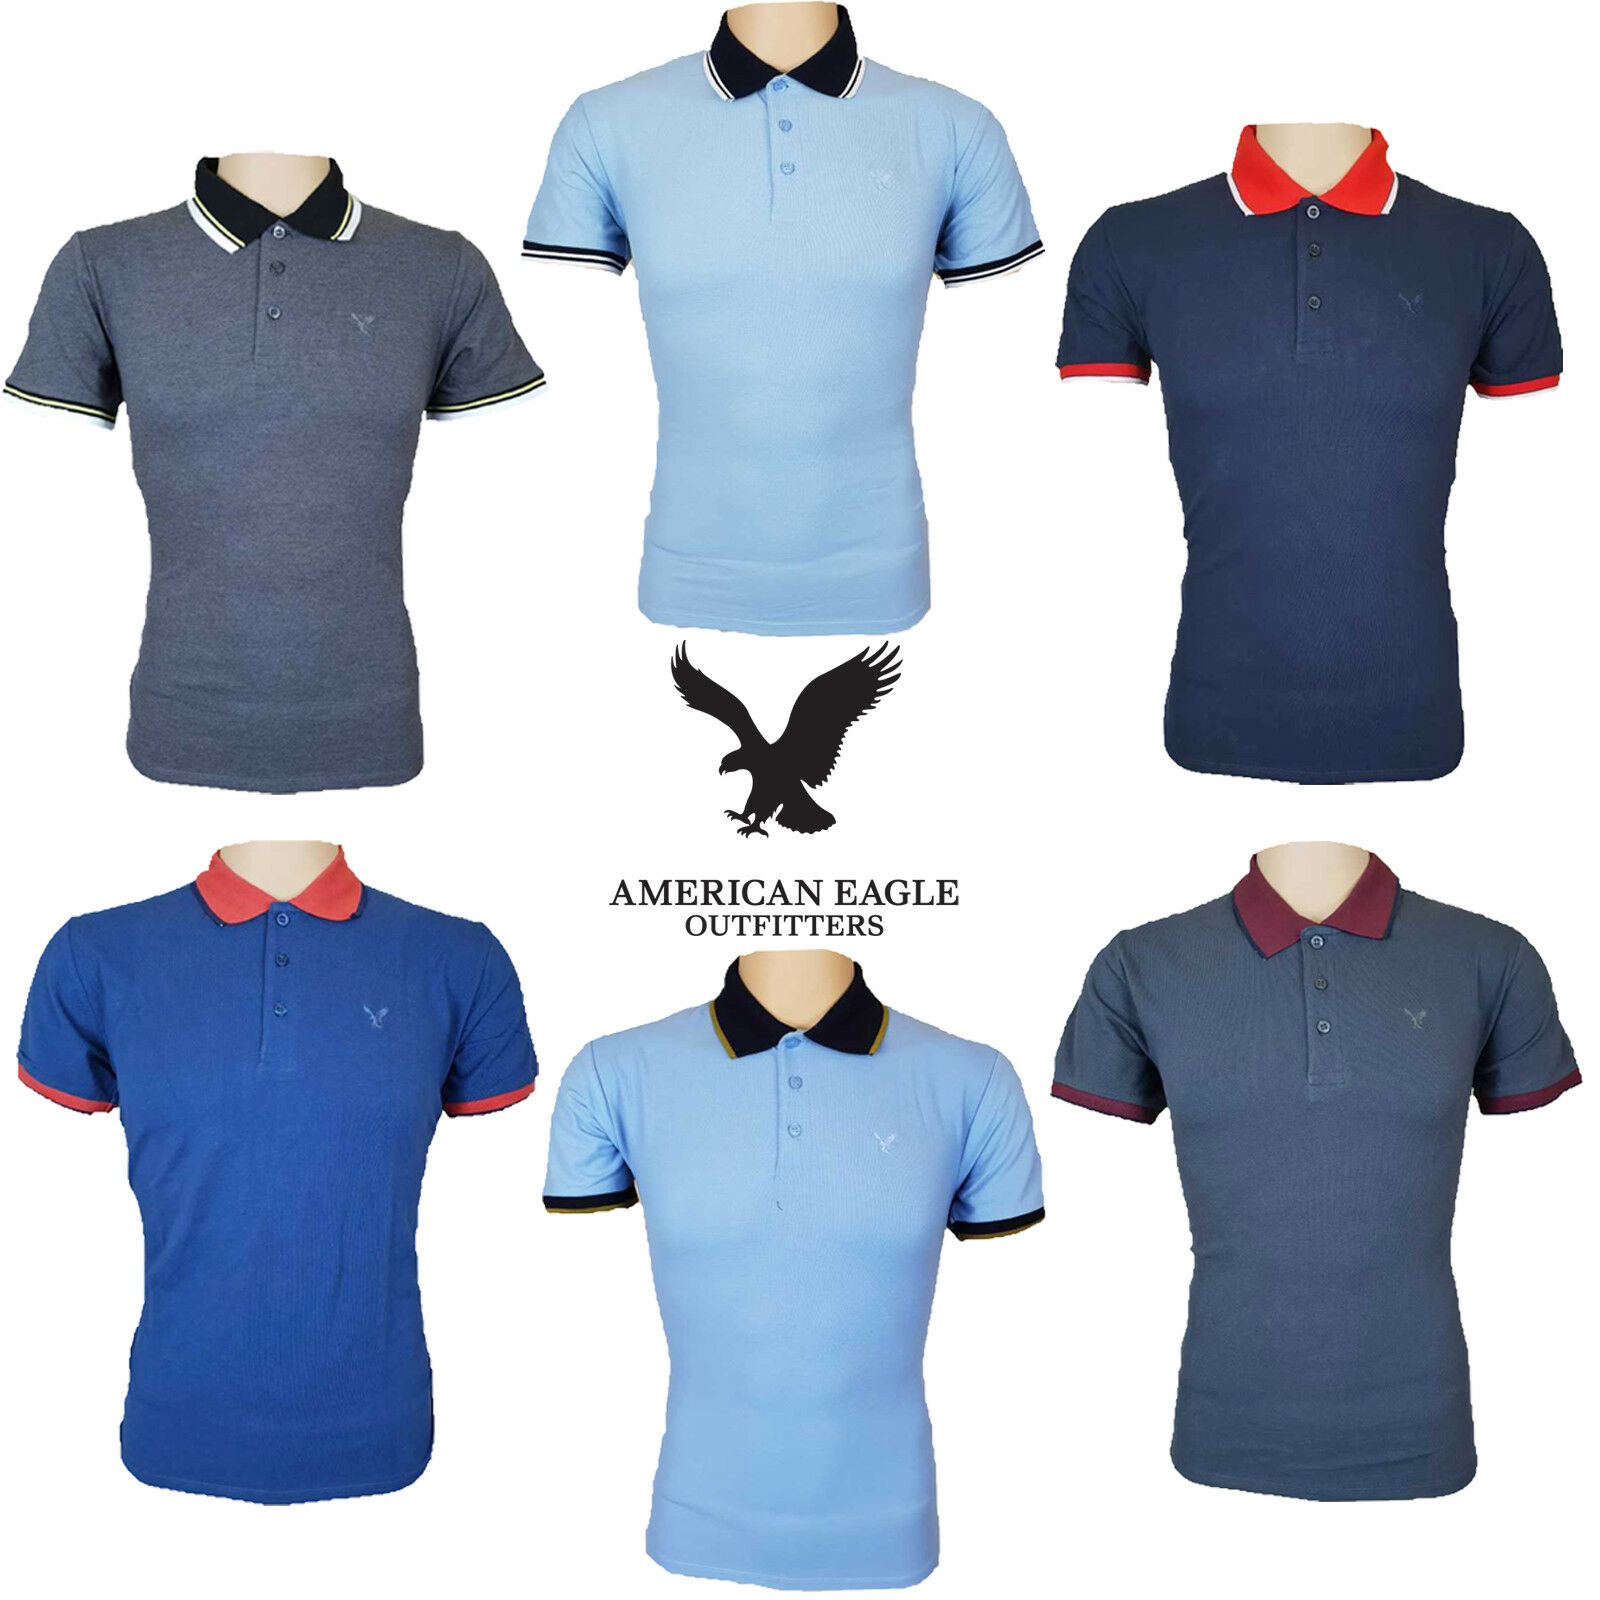 American Eagle Polo T Shirt Outfitters Mens Pique Cotton Designer New Top Tee